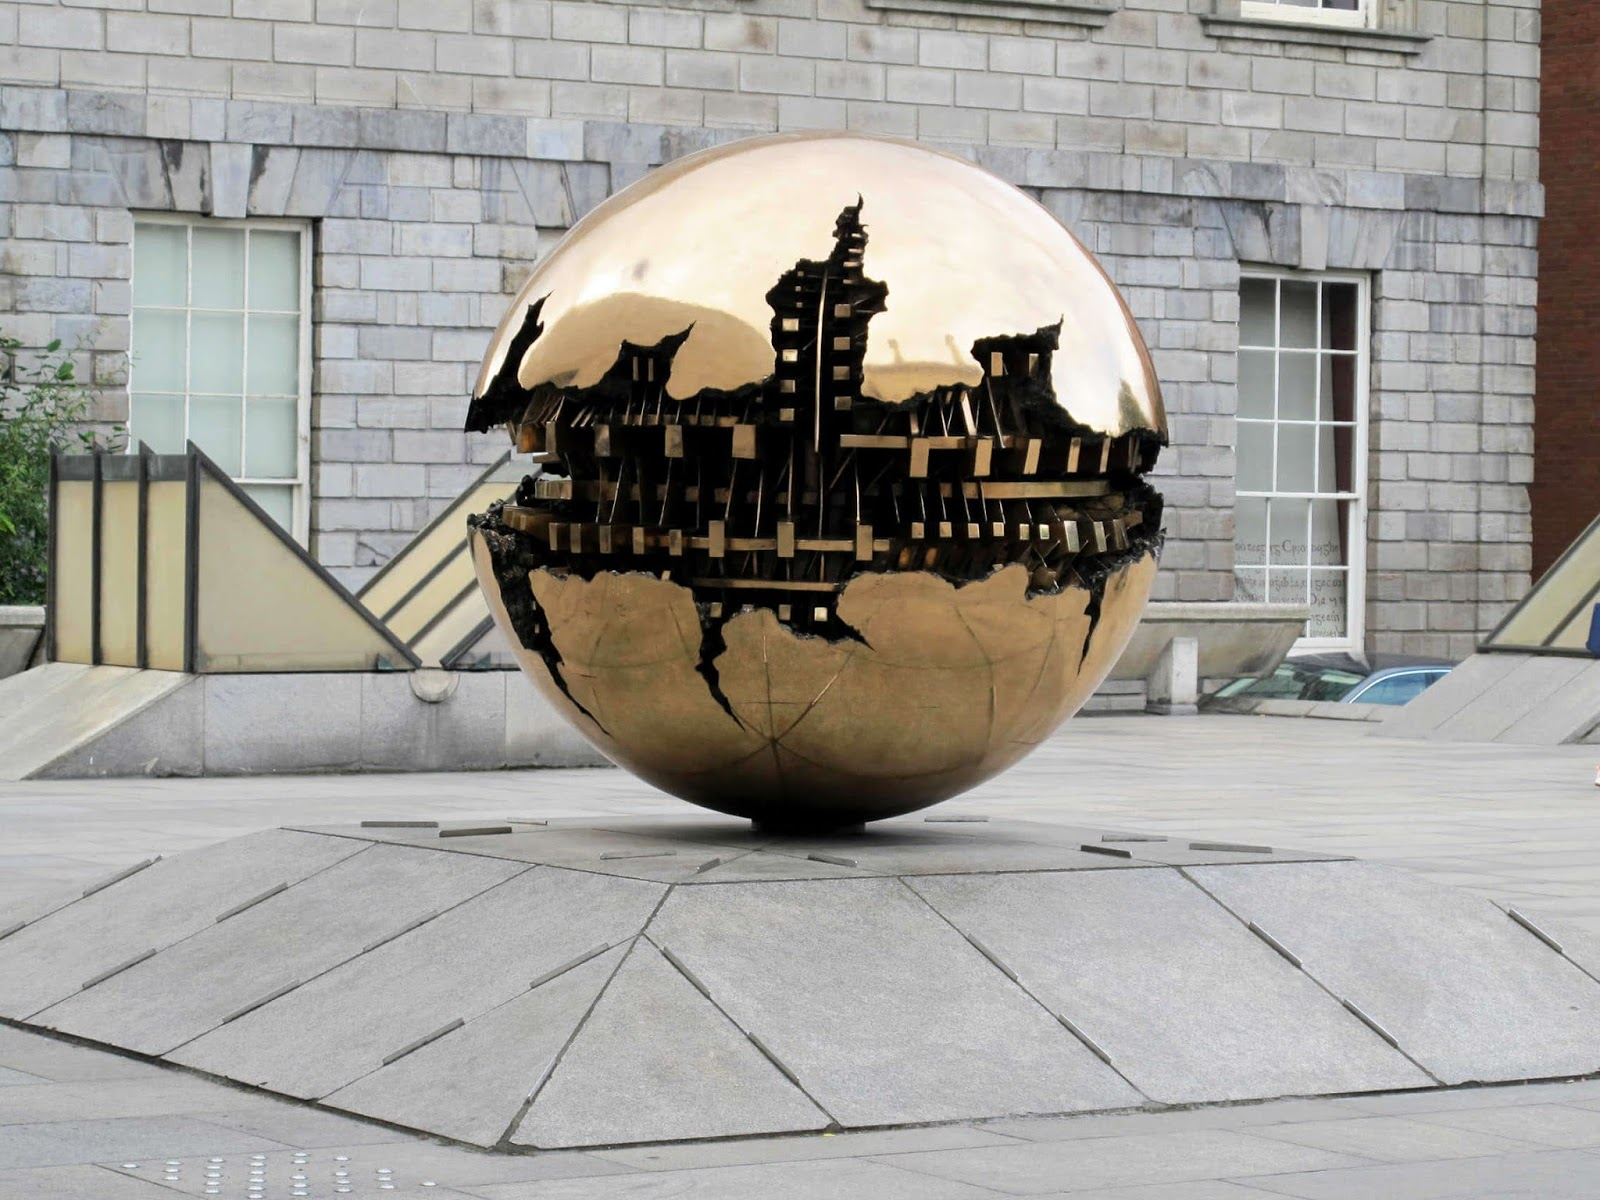 City guide Dublin Trinity College